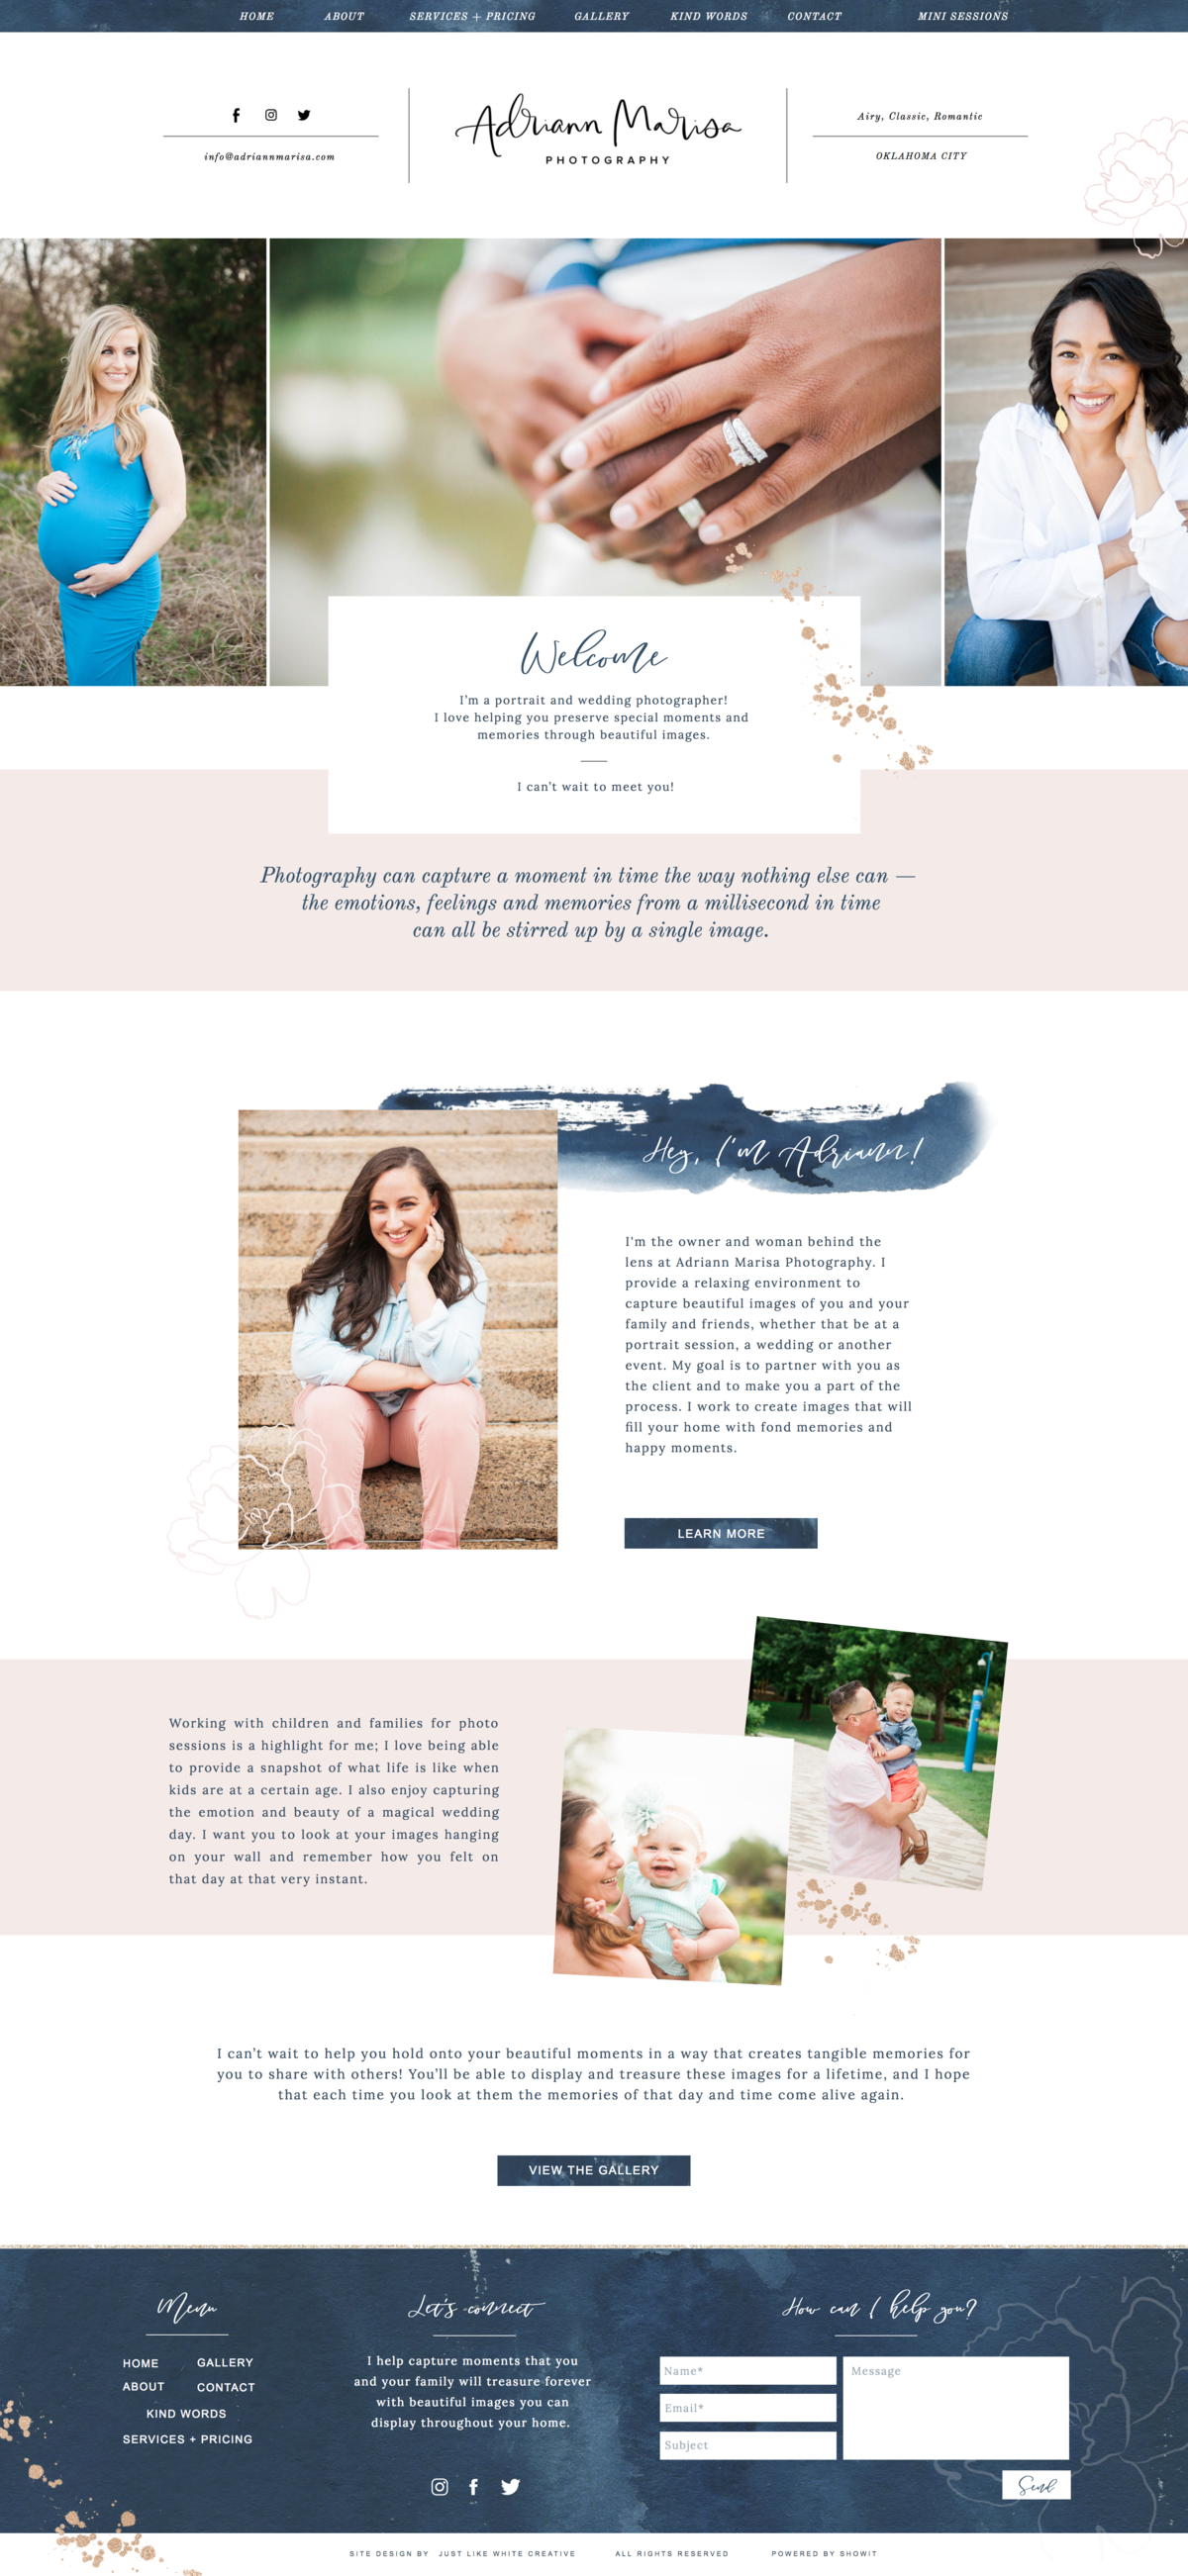 feminine website design by Tribble Design Co.